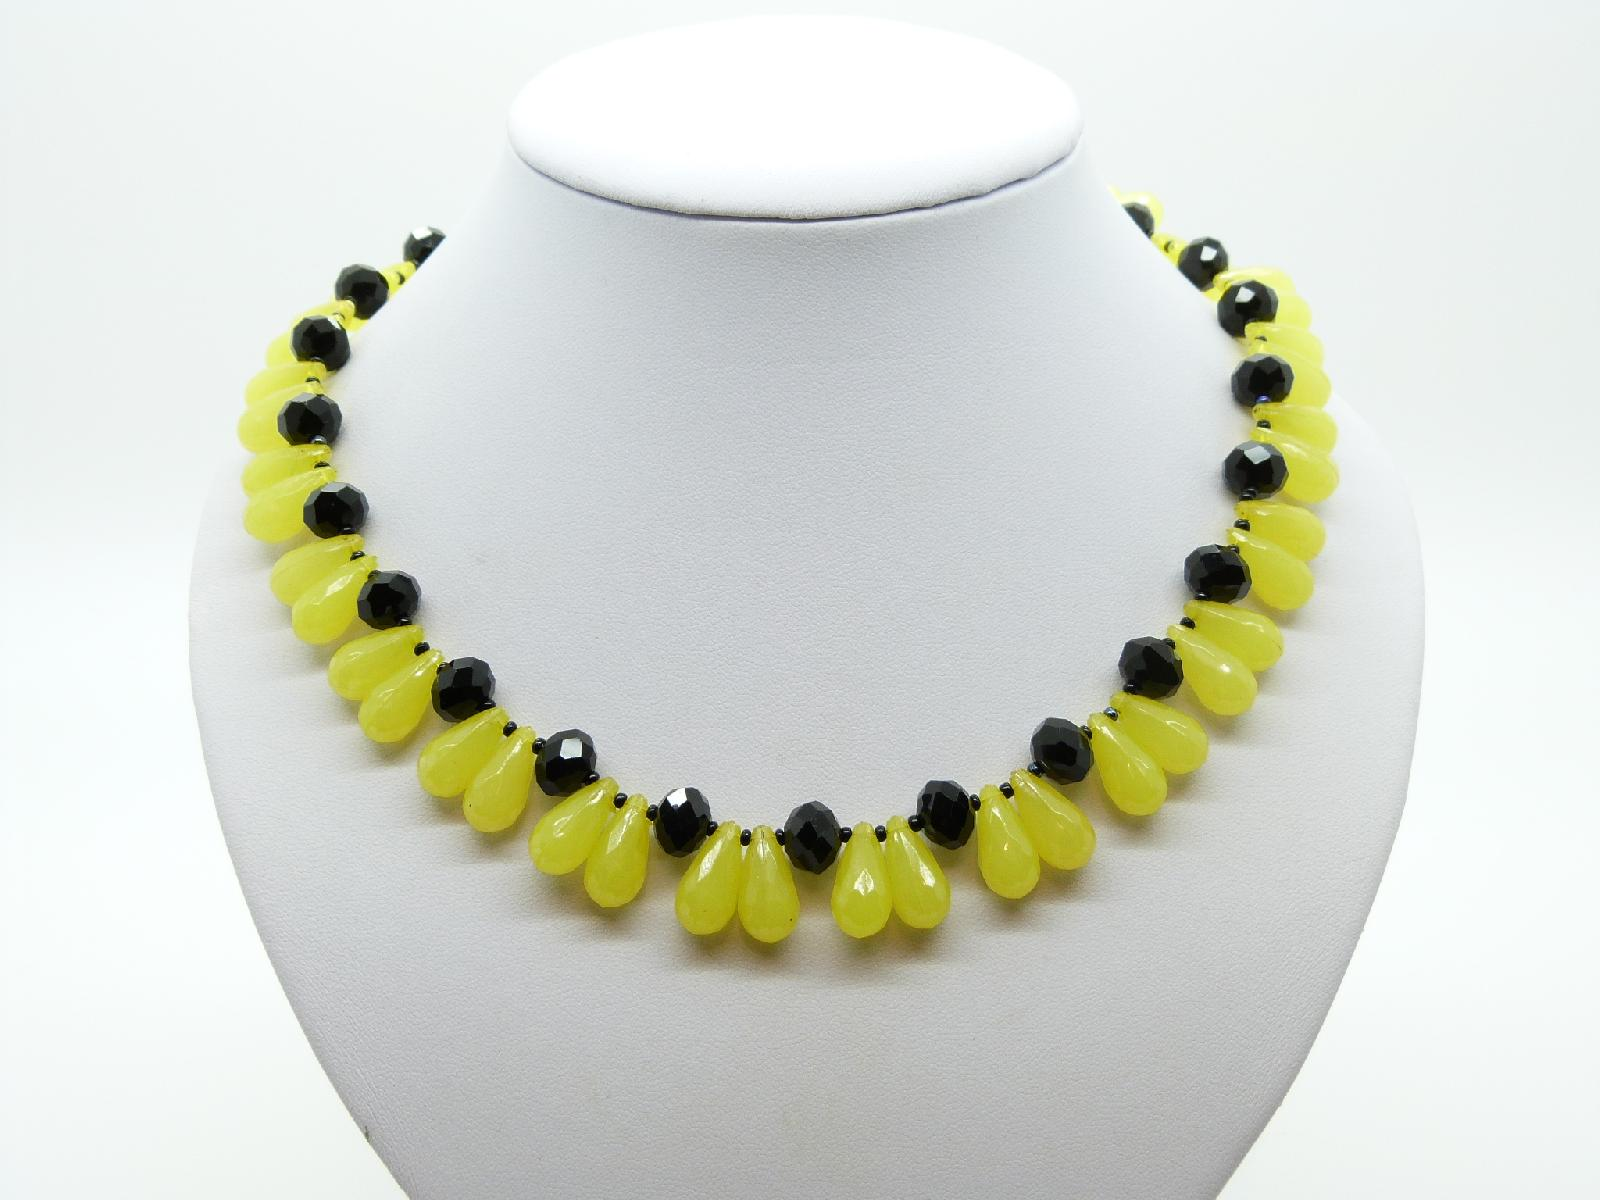 Vintage 50s Black Glass and Yellow Lucite Teardrop Bead Necklace Amazing!